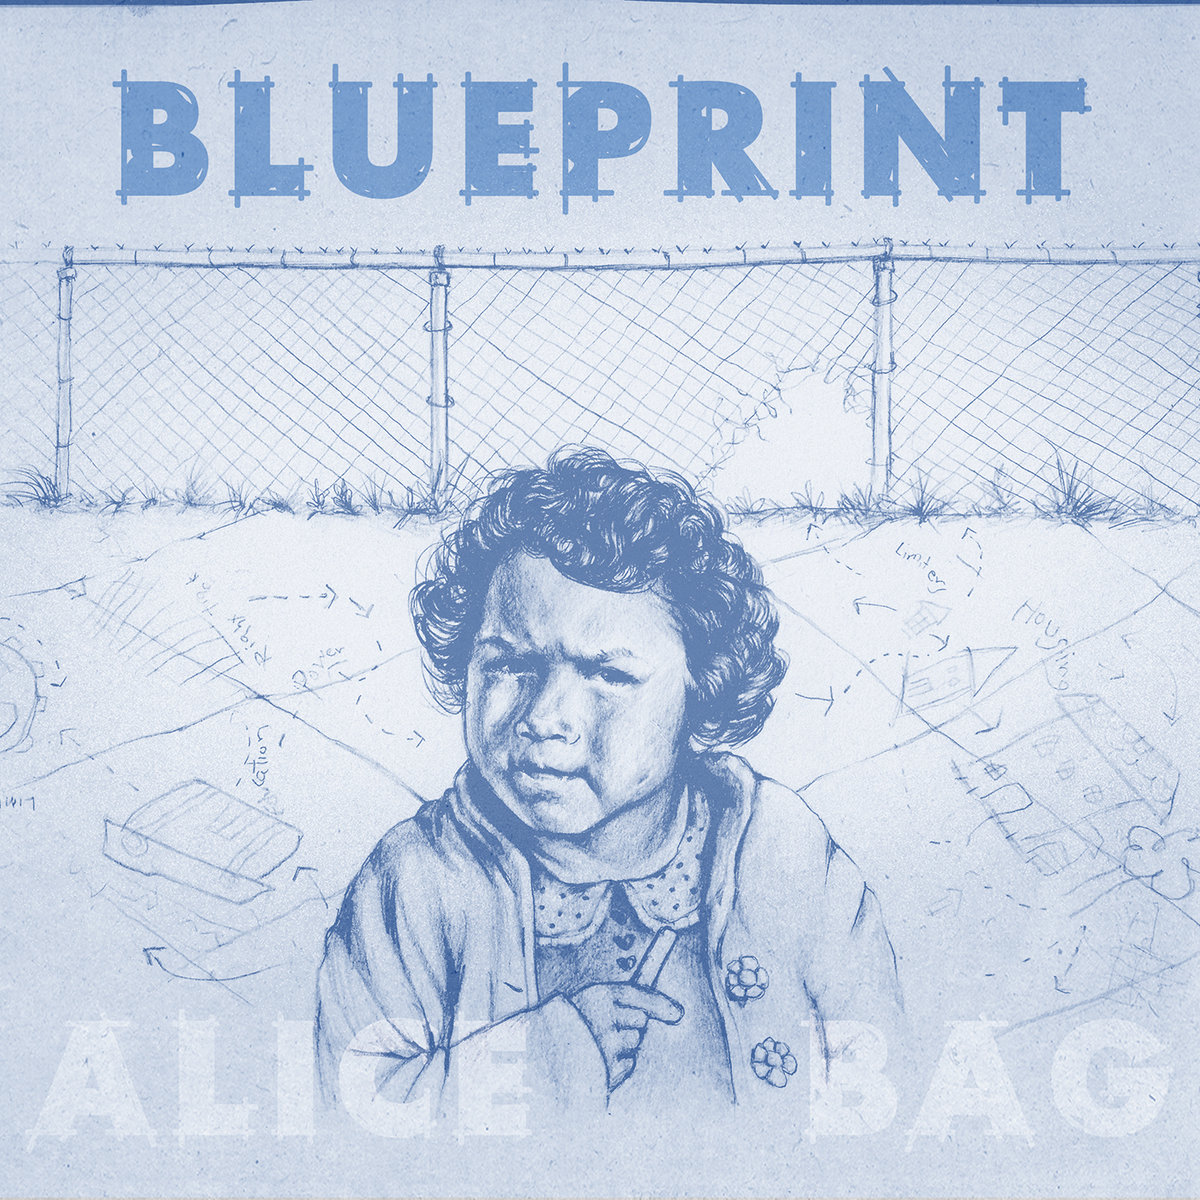 Blueprint alice bag blueprint by alice bag malvernweather